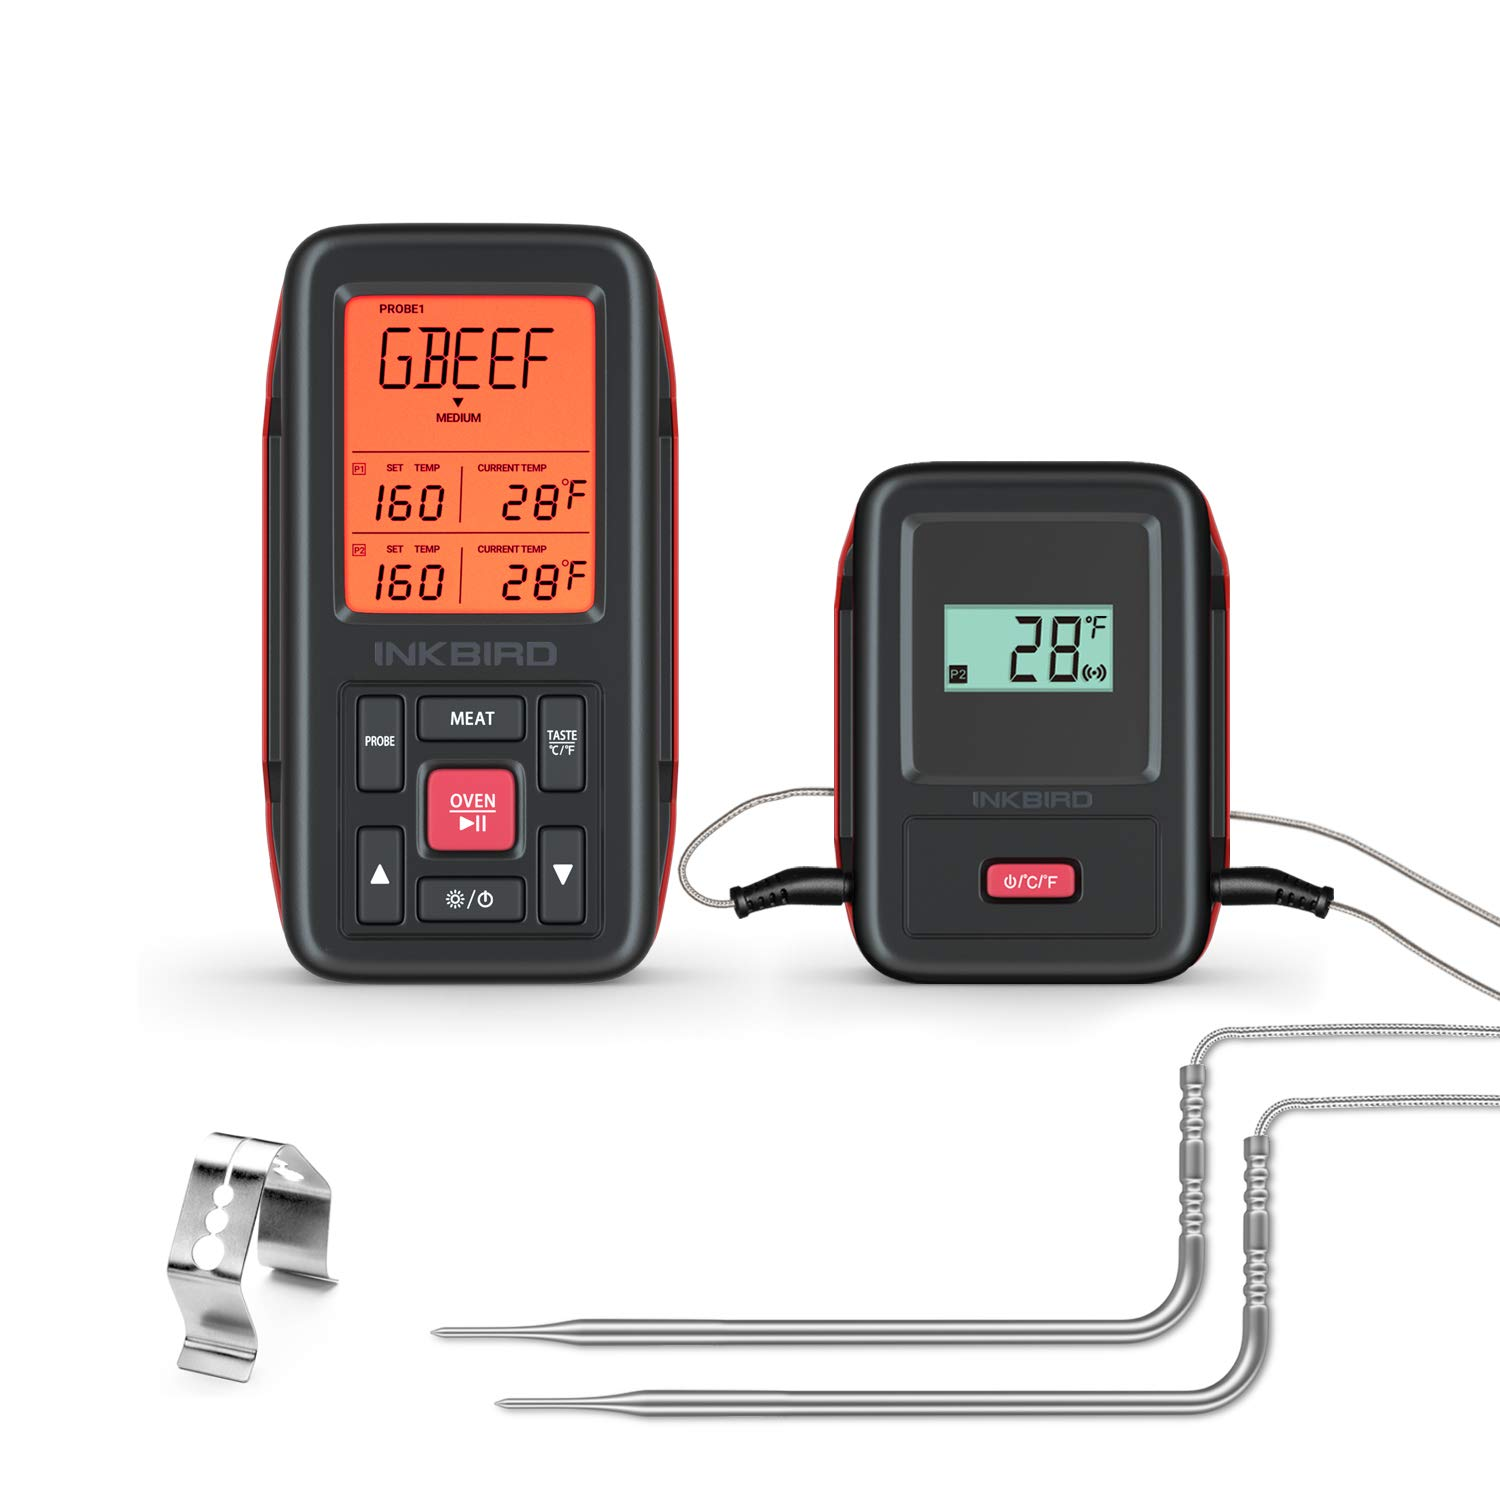 Inkbird IRF-2SA 500ft Wireless Remote Grill Thermometer, Digital Cooking Meat Thermometer with Backlight, Alarm, Timer Food BBQ Thermometer for Smoker, Roasting, Kitchen, Oven, Drum, Dual Probes by Inkbird